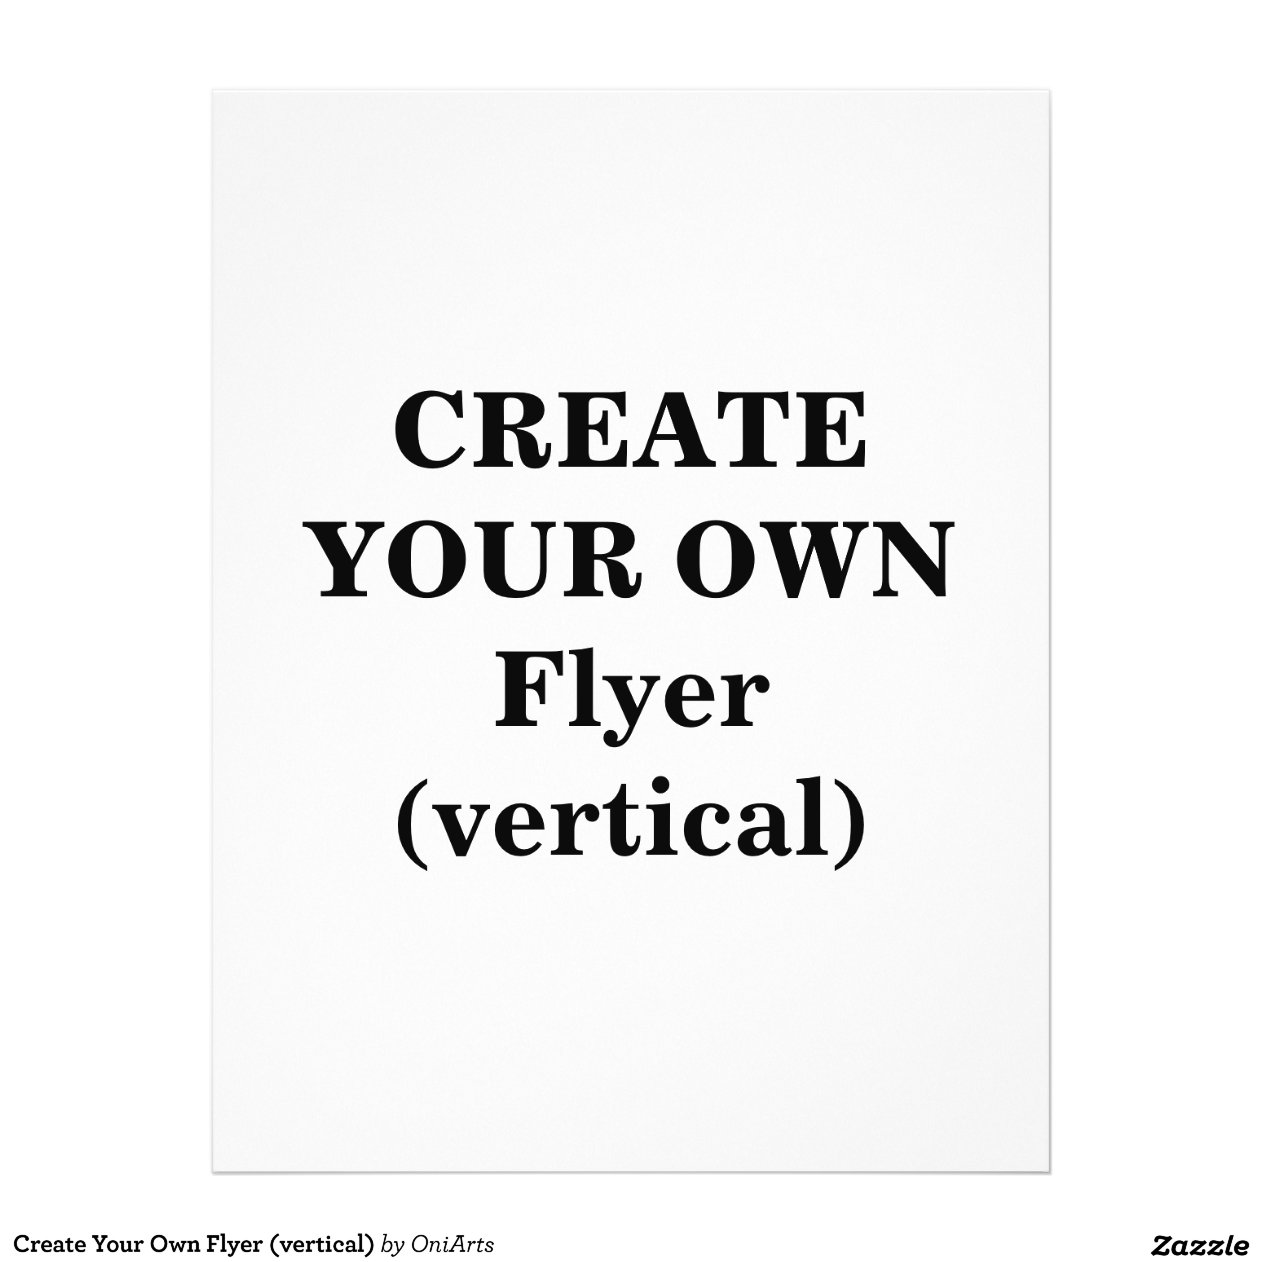 create_your_own_flyer_verticalr086e9aaa7895483dbb0fba162831a5fb_vgvyf_8byvr_1200jpgview